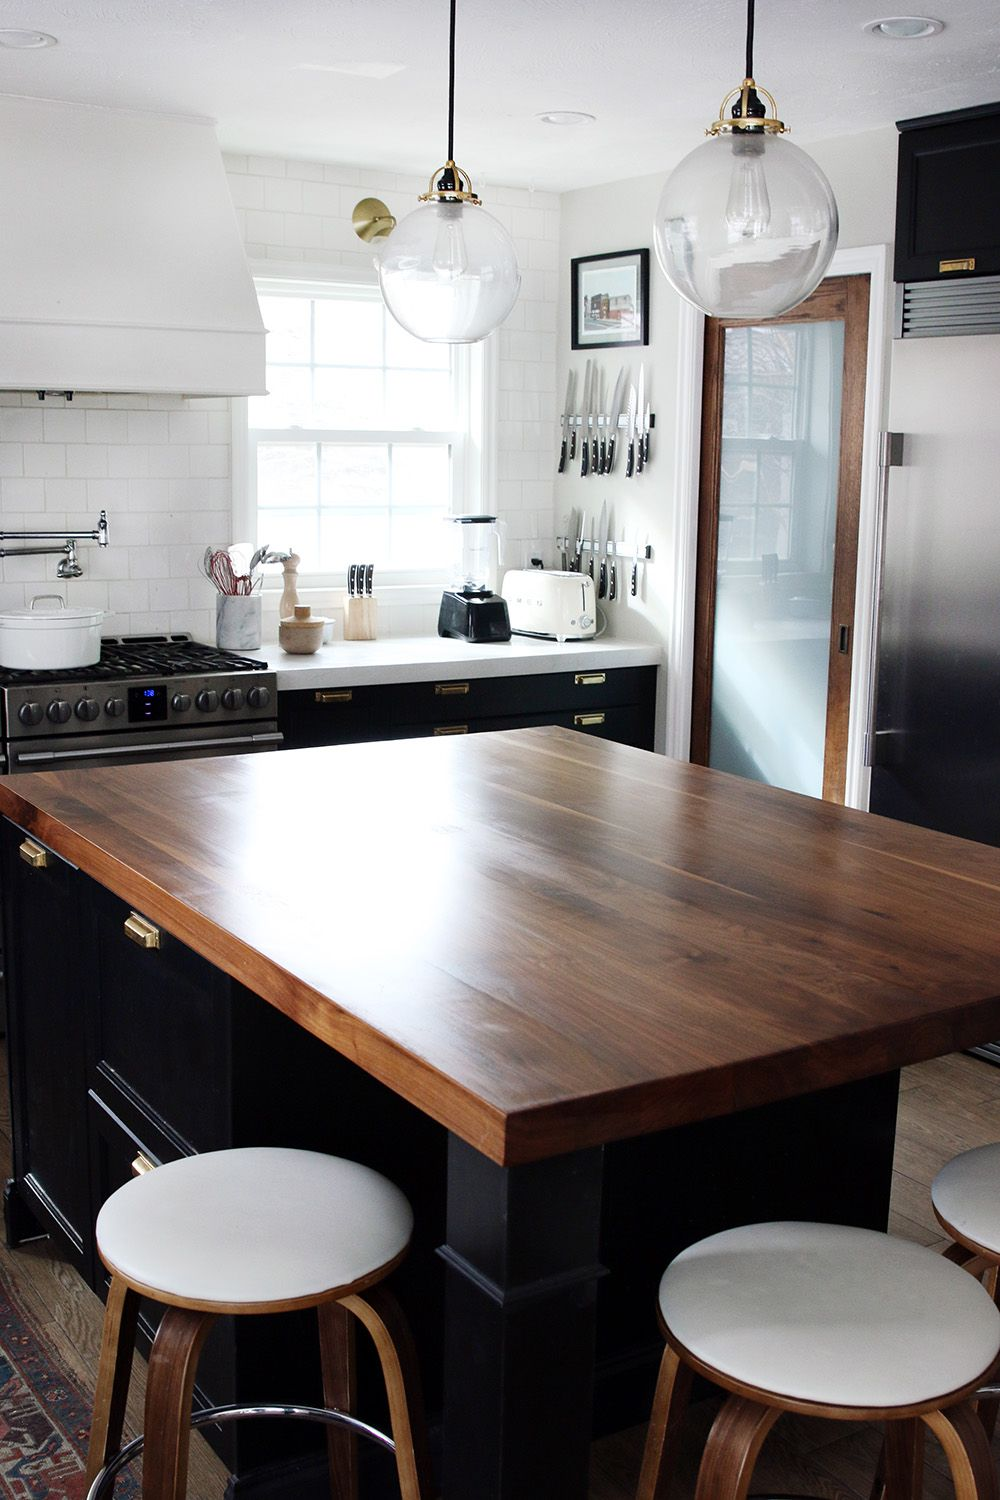 How We Refinished Our Butcher Block Countertop With Images